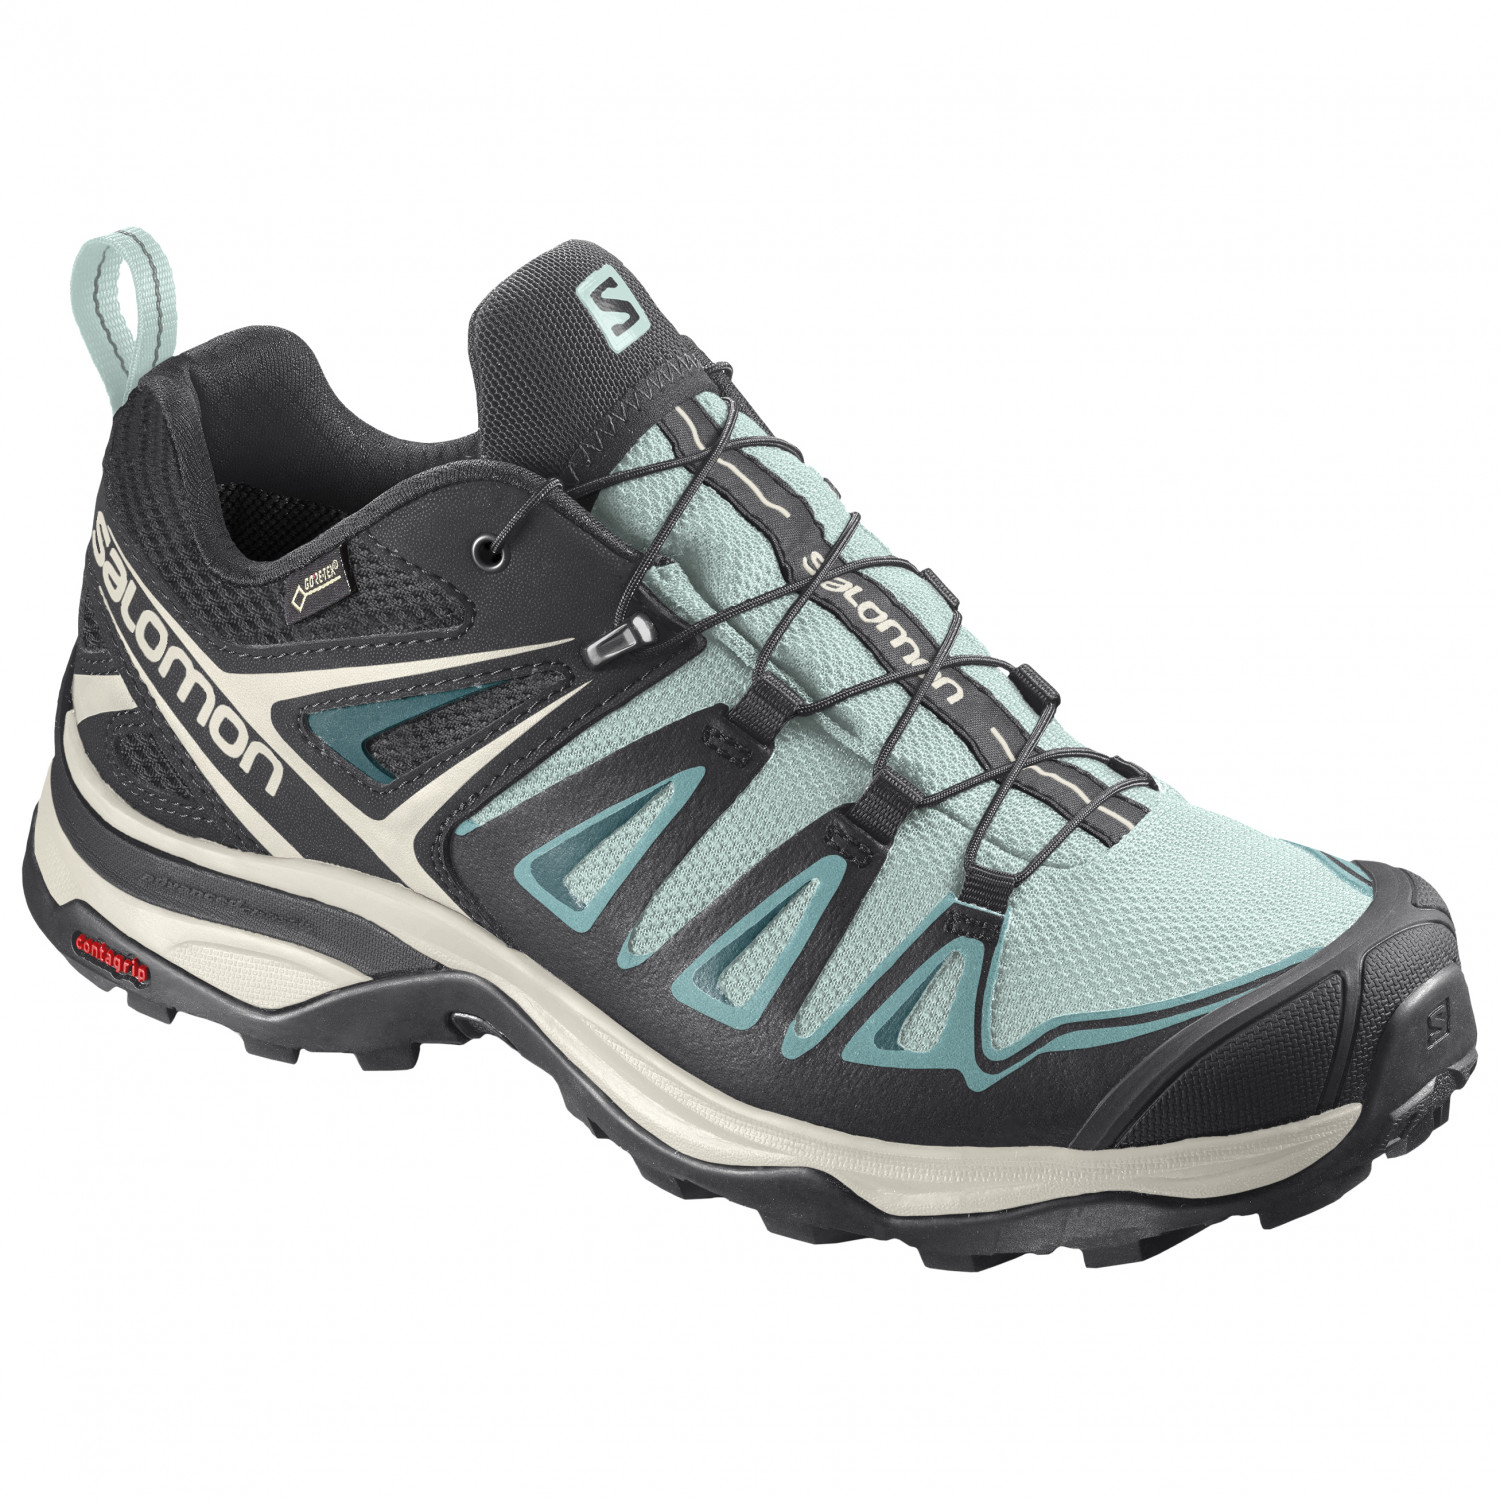 Salomon X Ultra 3 GTX - Multisport shoes Women's | Free EU ...